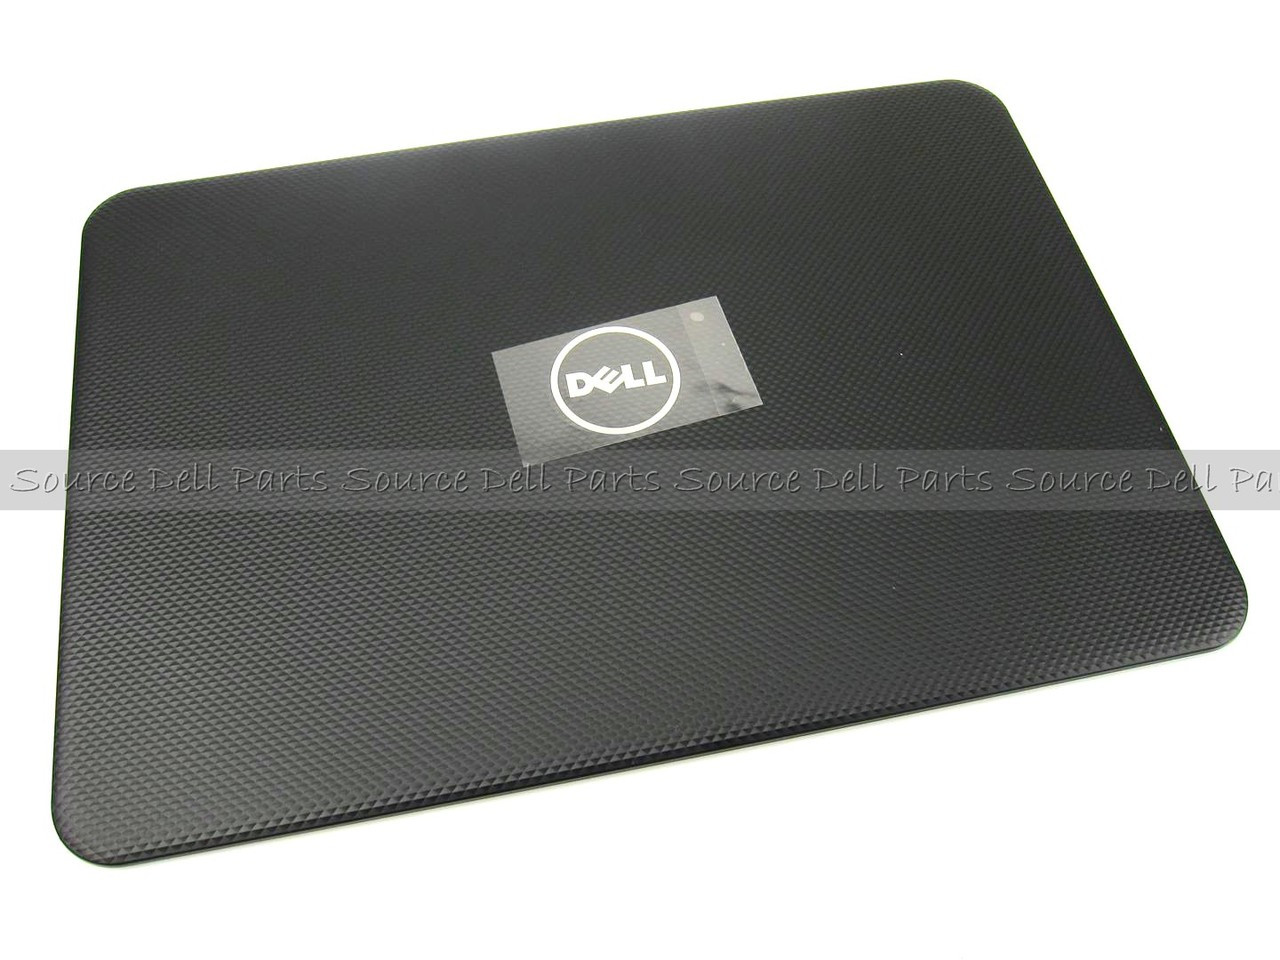 Dell Inspiron 5521 / 3521 15.6 Lcd Back Cover Lid - XTFGD